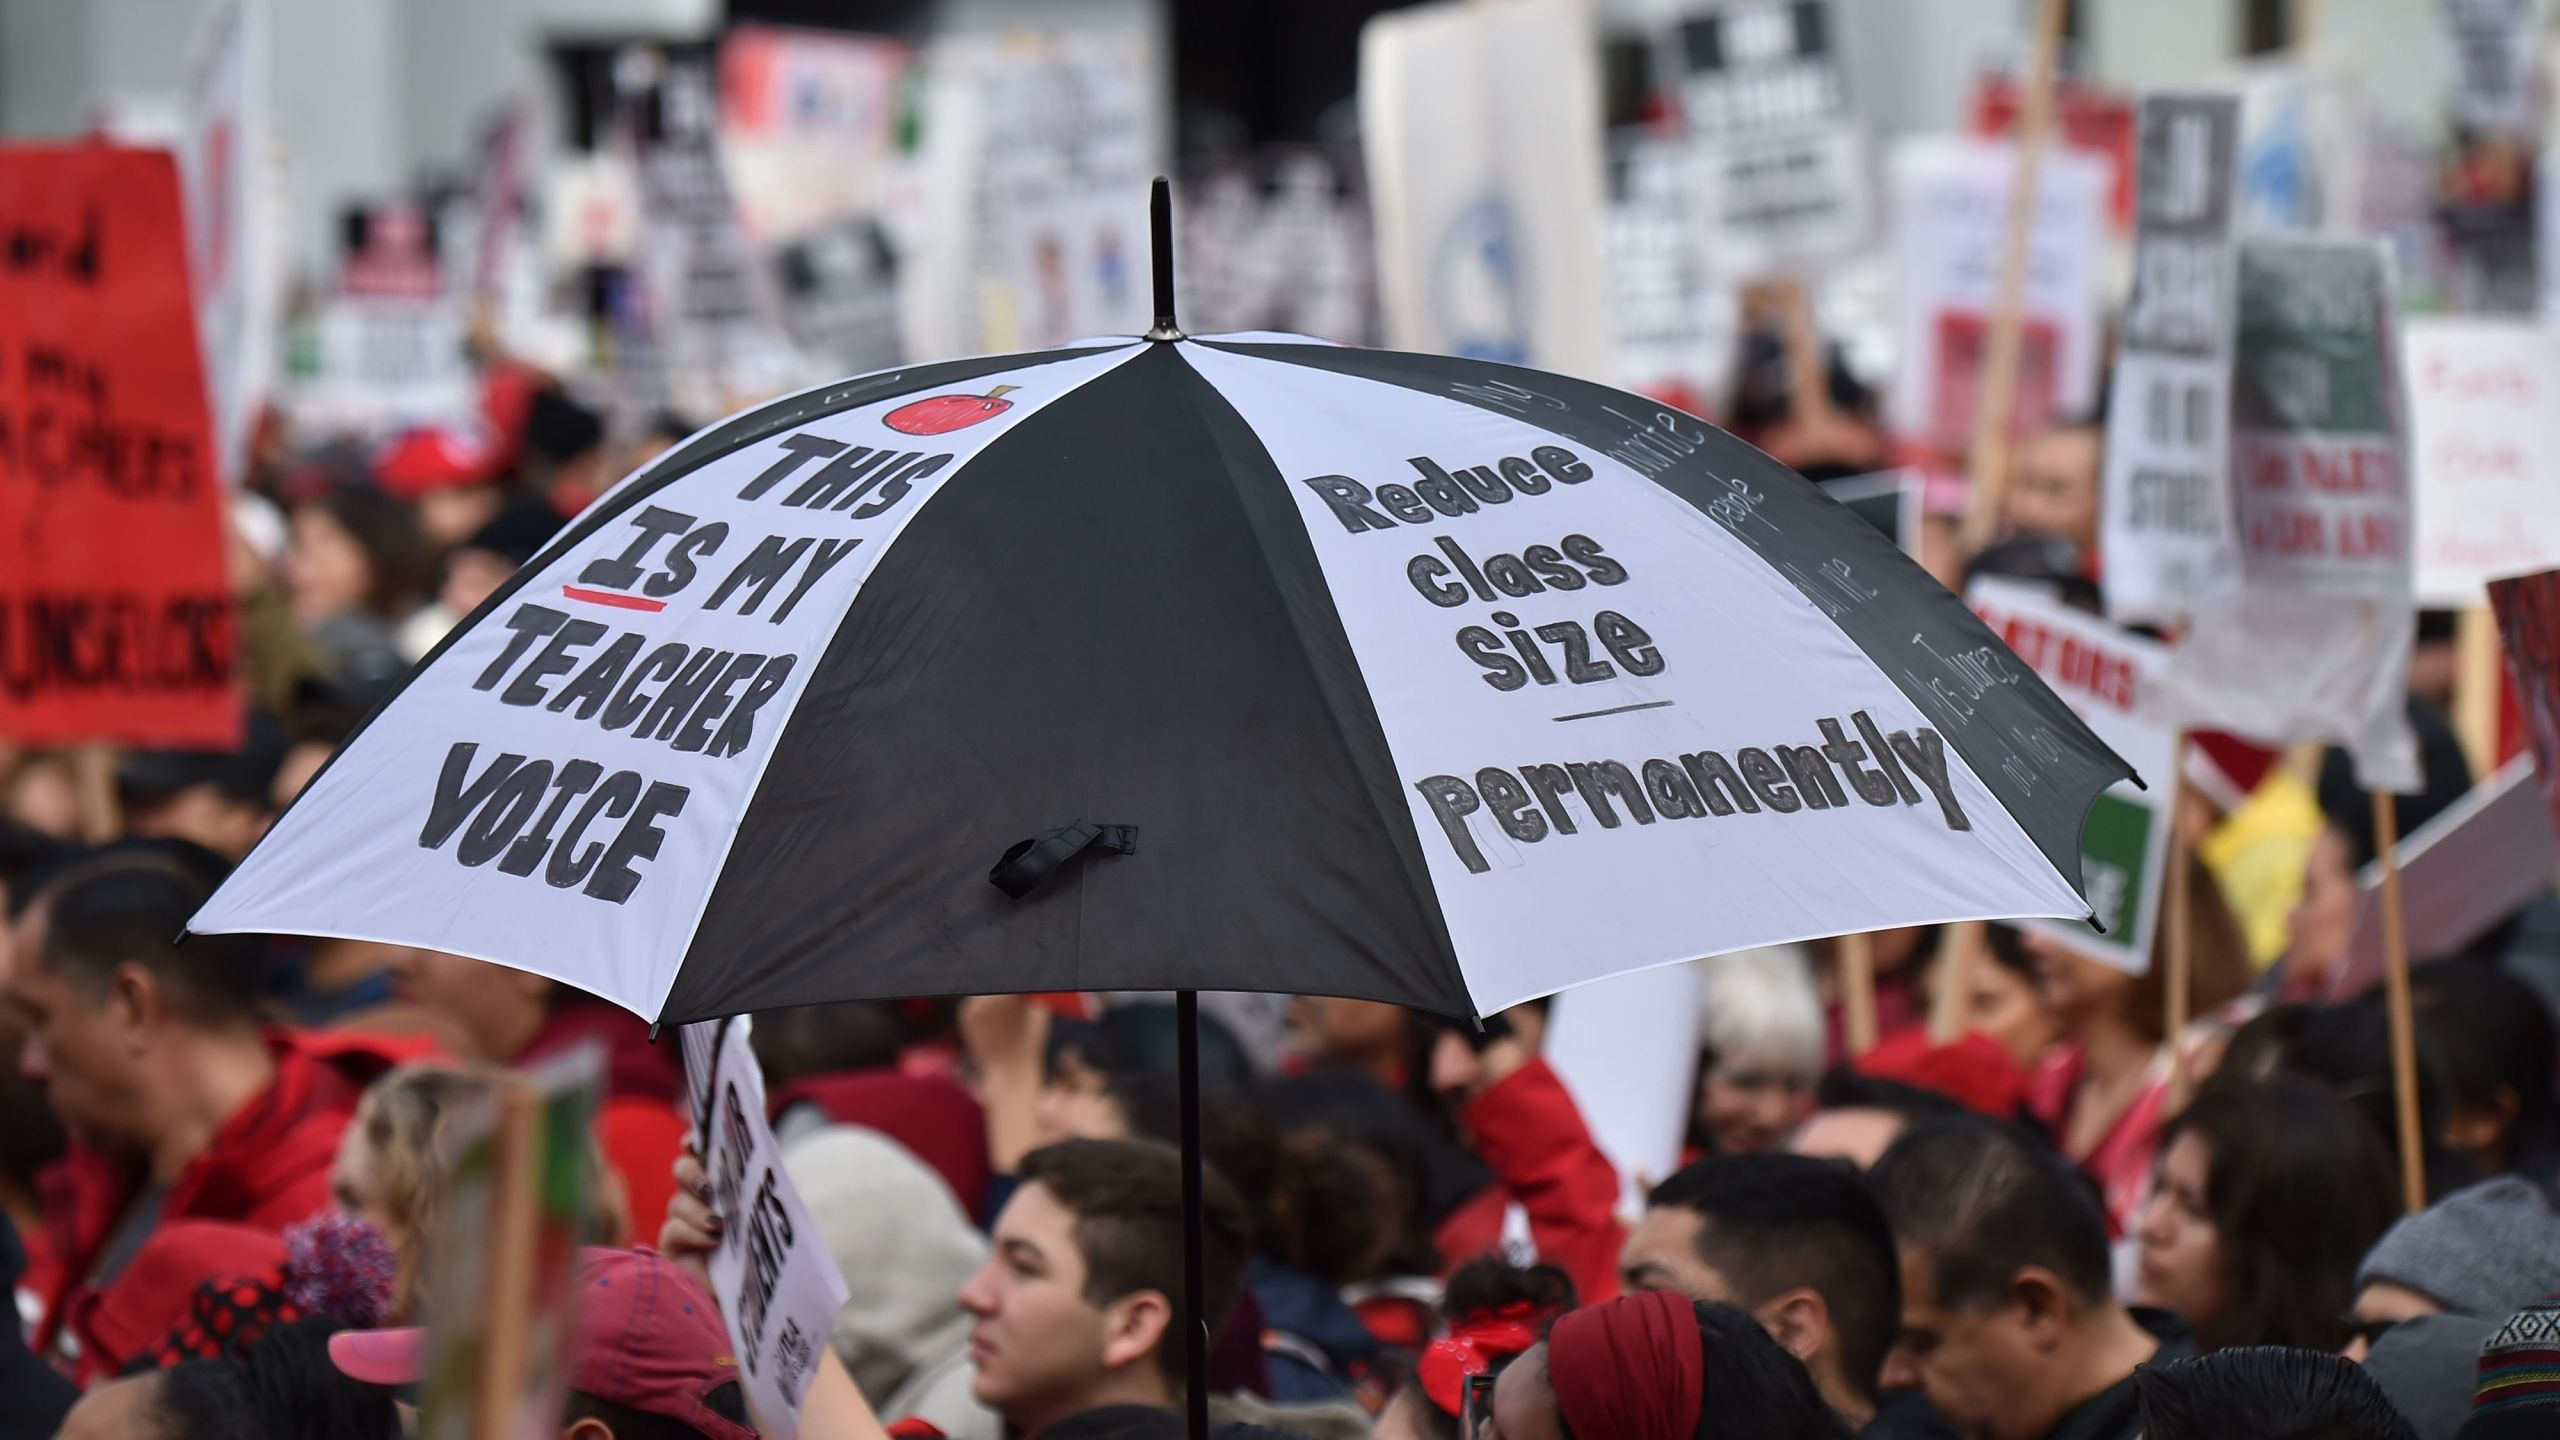 Striking teachers and their supporters rally in downtown Los Angeles on Jan. 15, 2019. (Credit: ROBYN BECK/AFP/Getty Images)